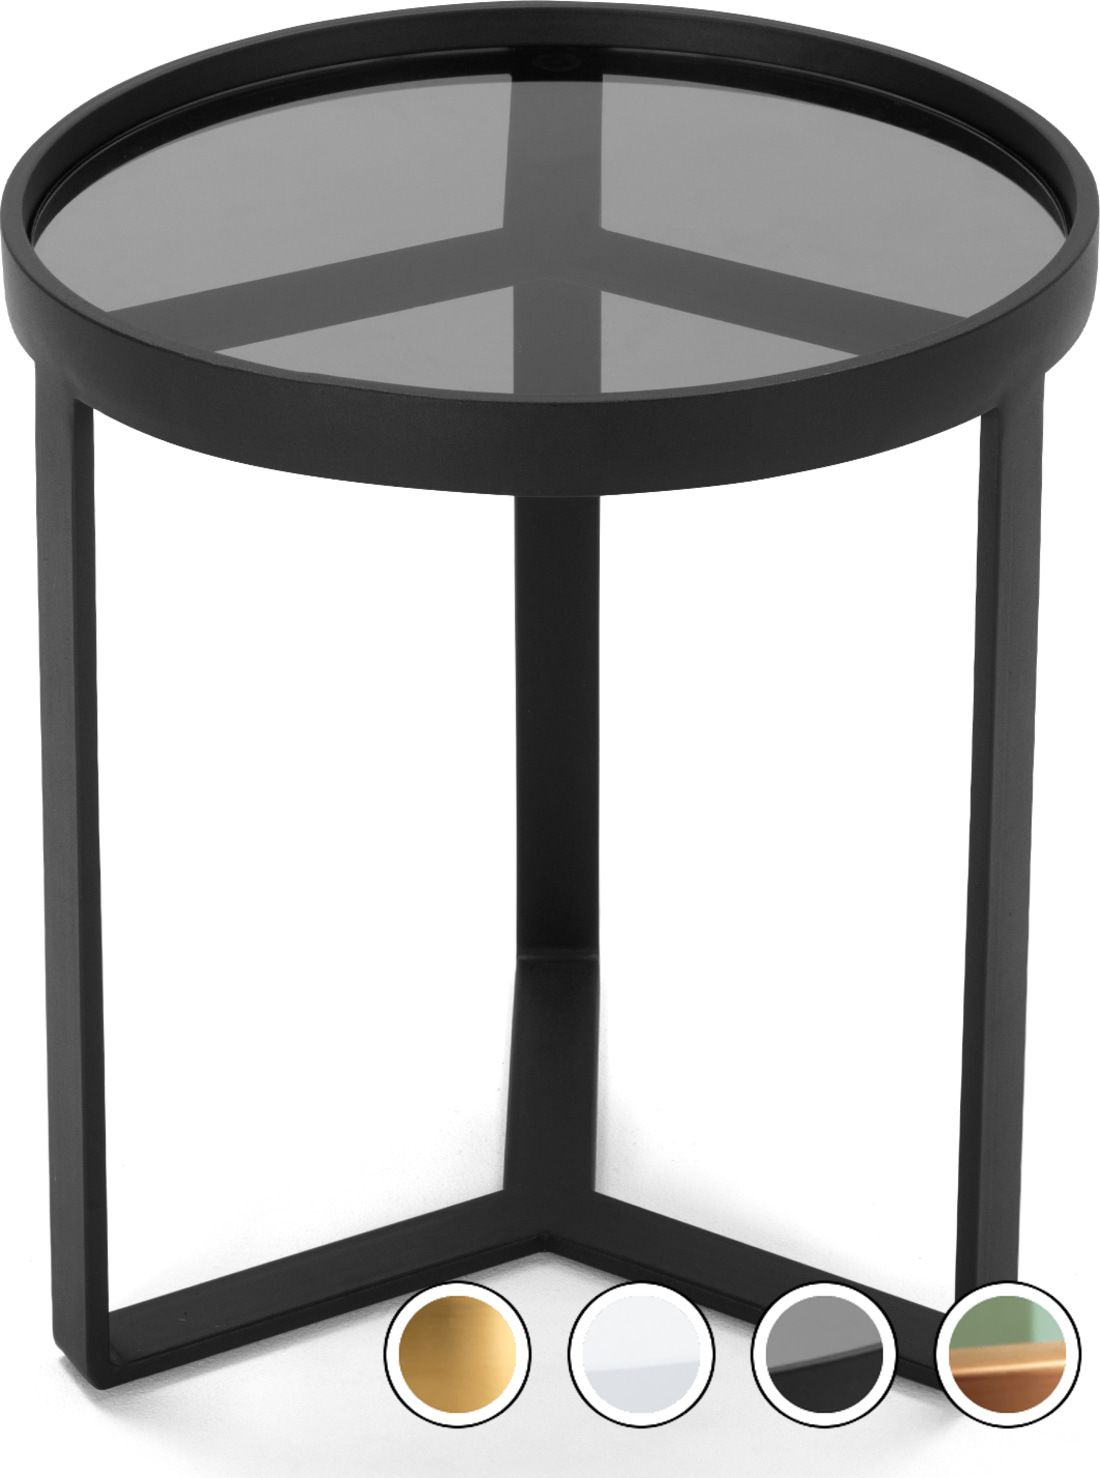 Aula Side Table, Black and Grey